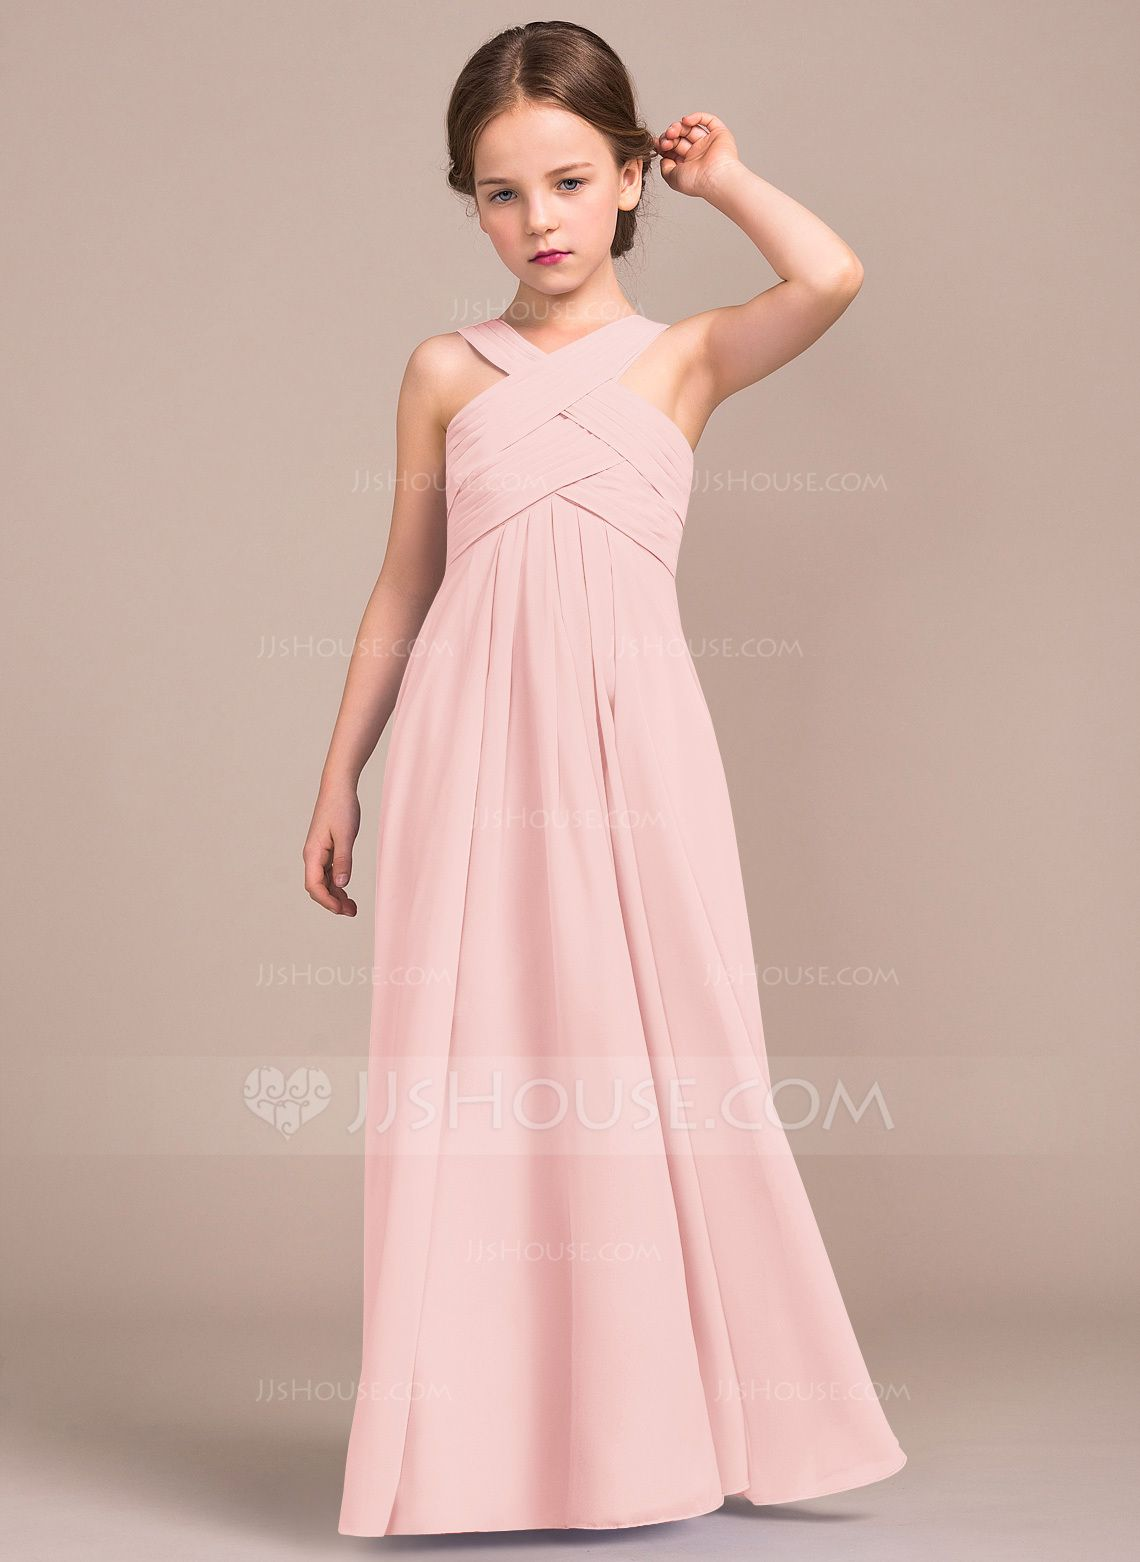 4c33361e08 A-Line Princess V-neck Floor-Length Ruffle Zipper Up Regular Straps  Sleeveless No Lavender General Chiffon Junior Bridesmaid Dress